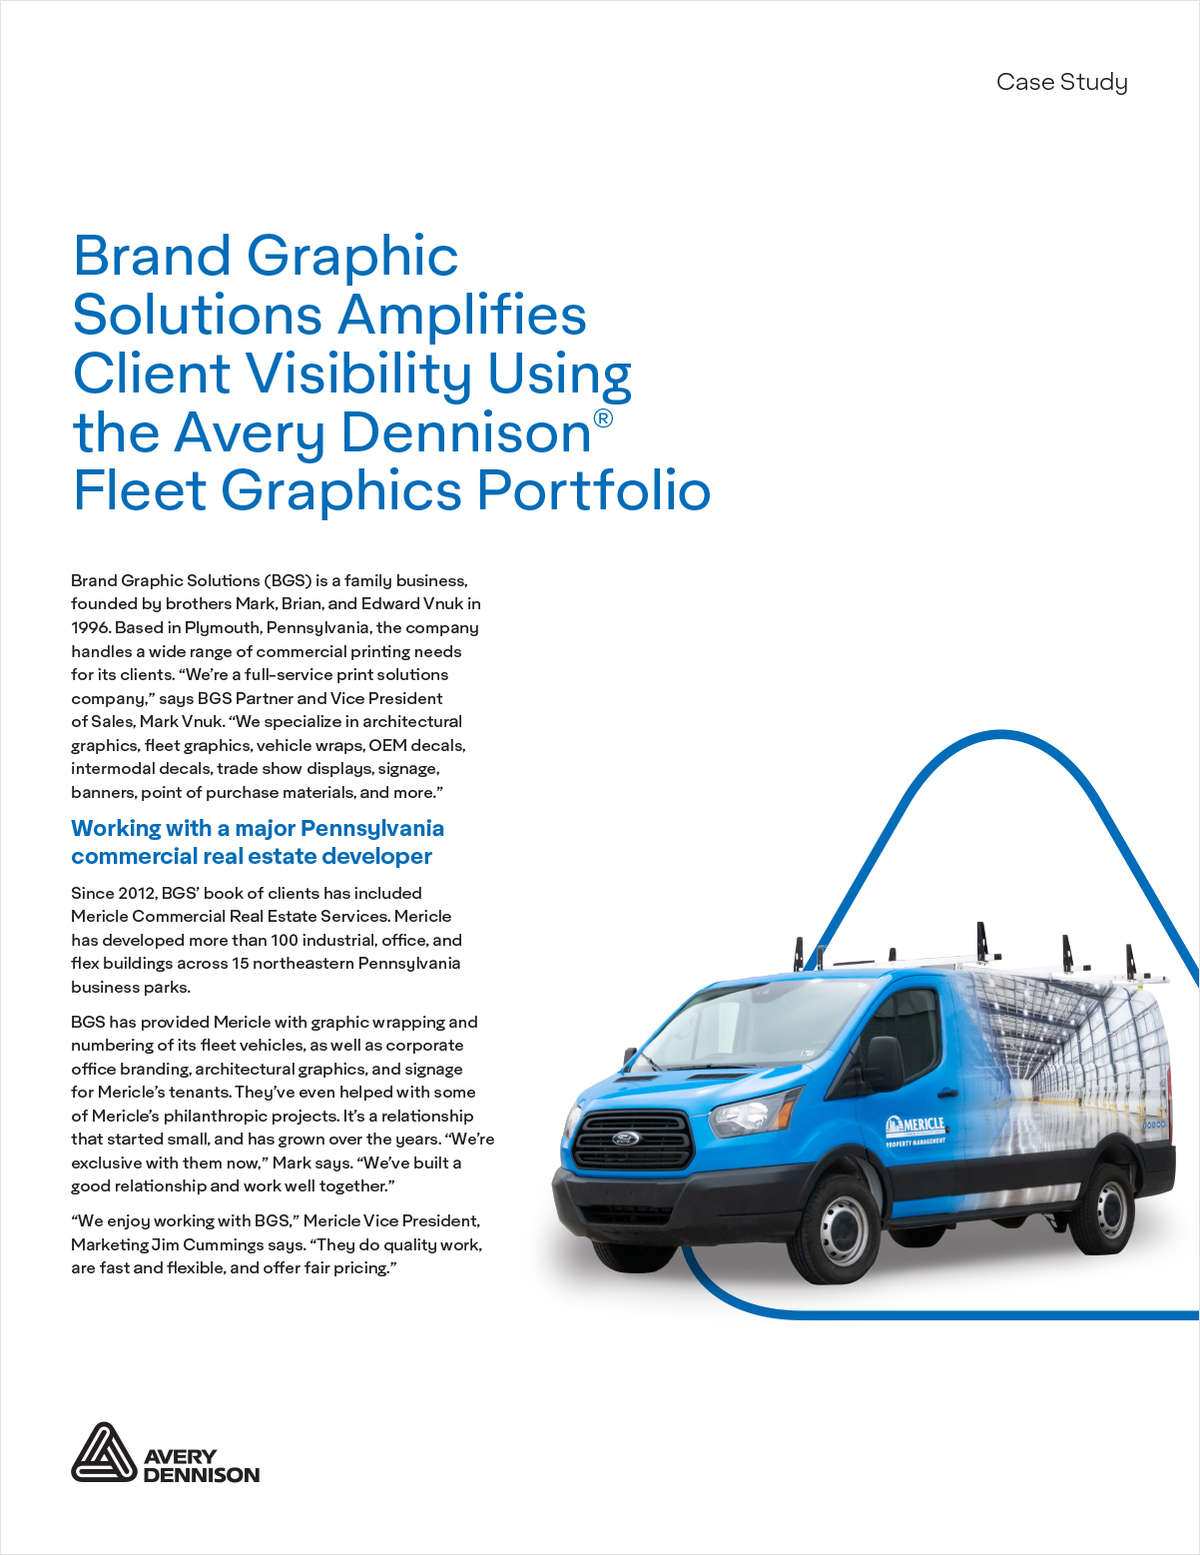 How to Amplify Client Visibility Using Fleet Graphics